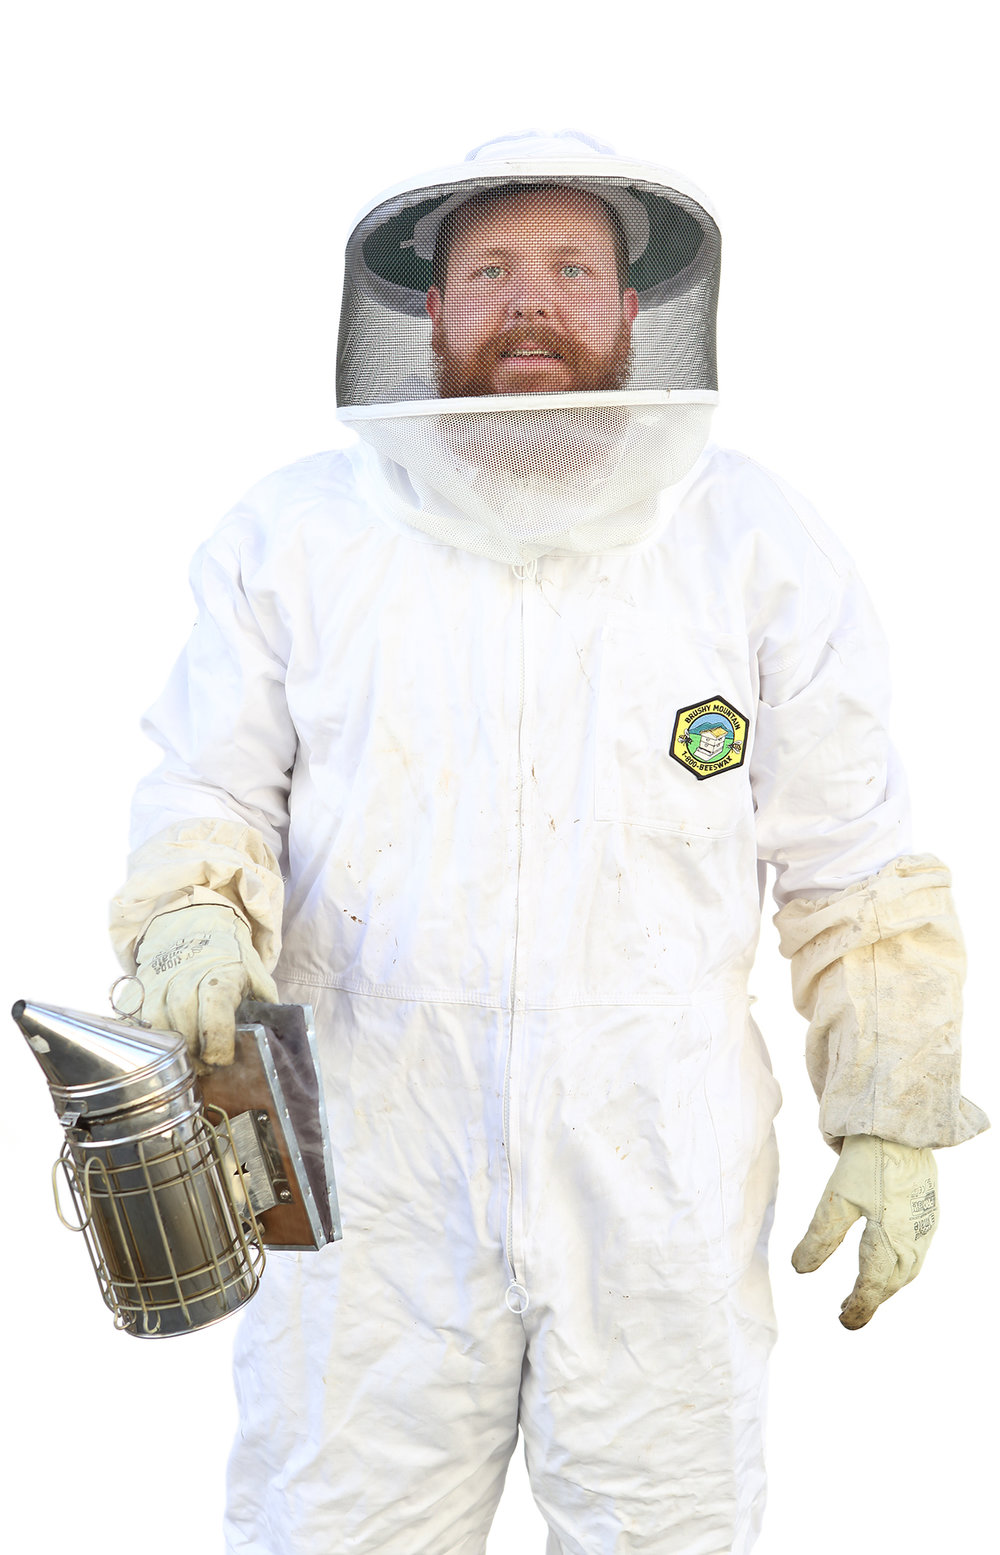 Harry the beekeeper.